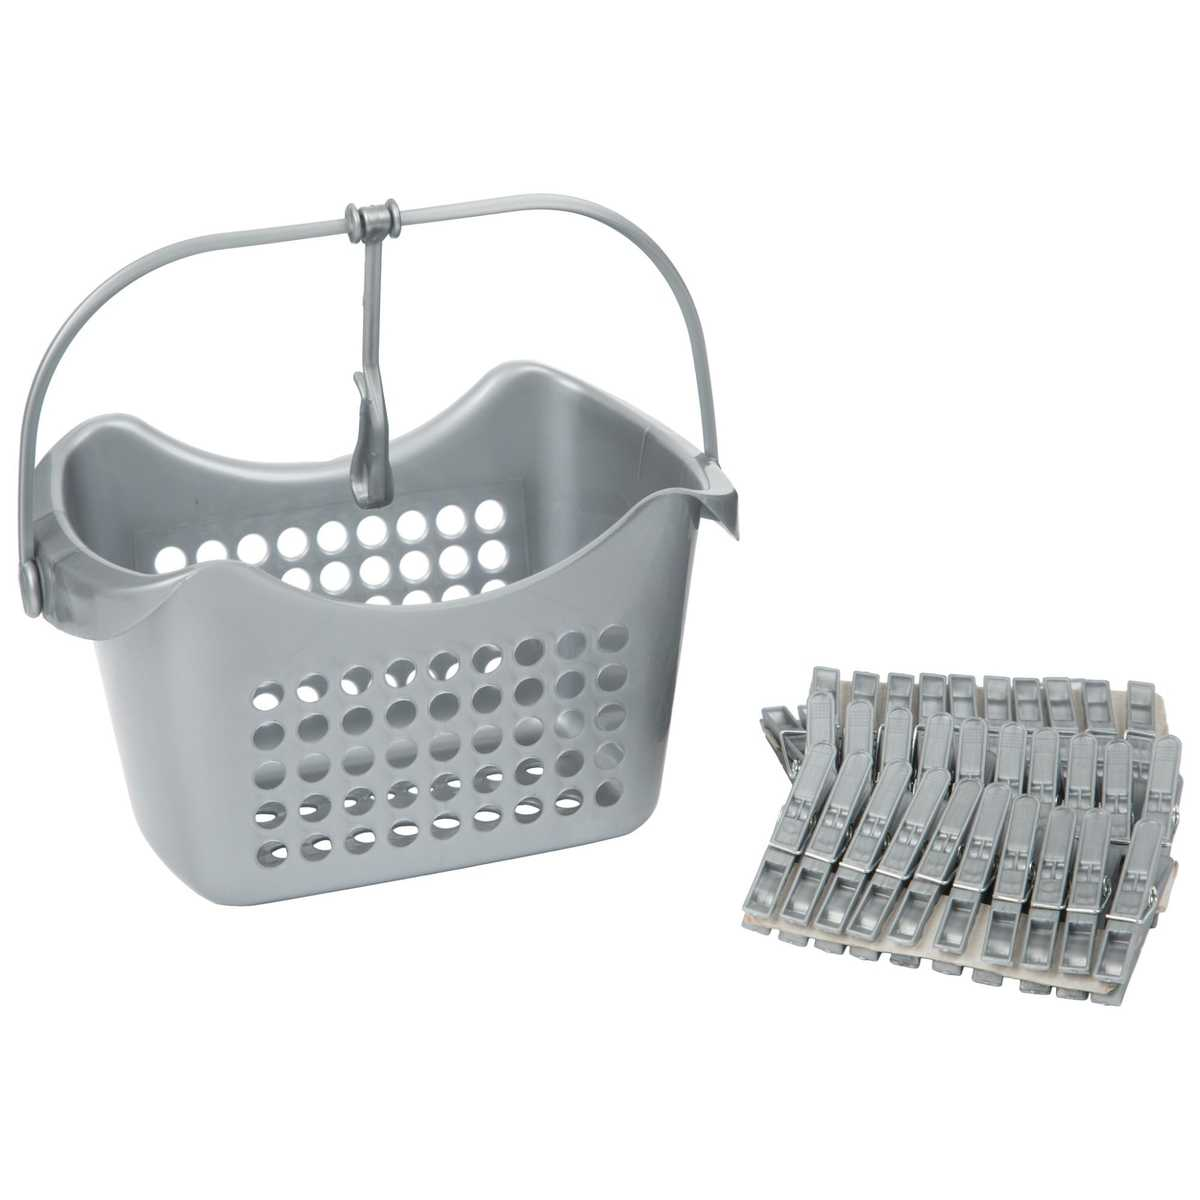 Bike Rack Big W Smart Value Peg Basket With 40 Pegs Big W